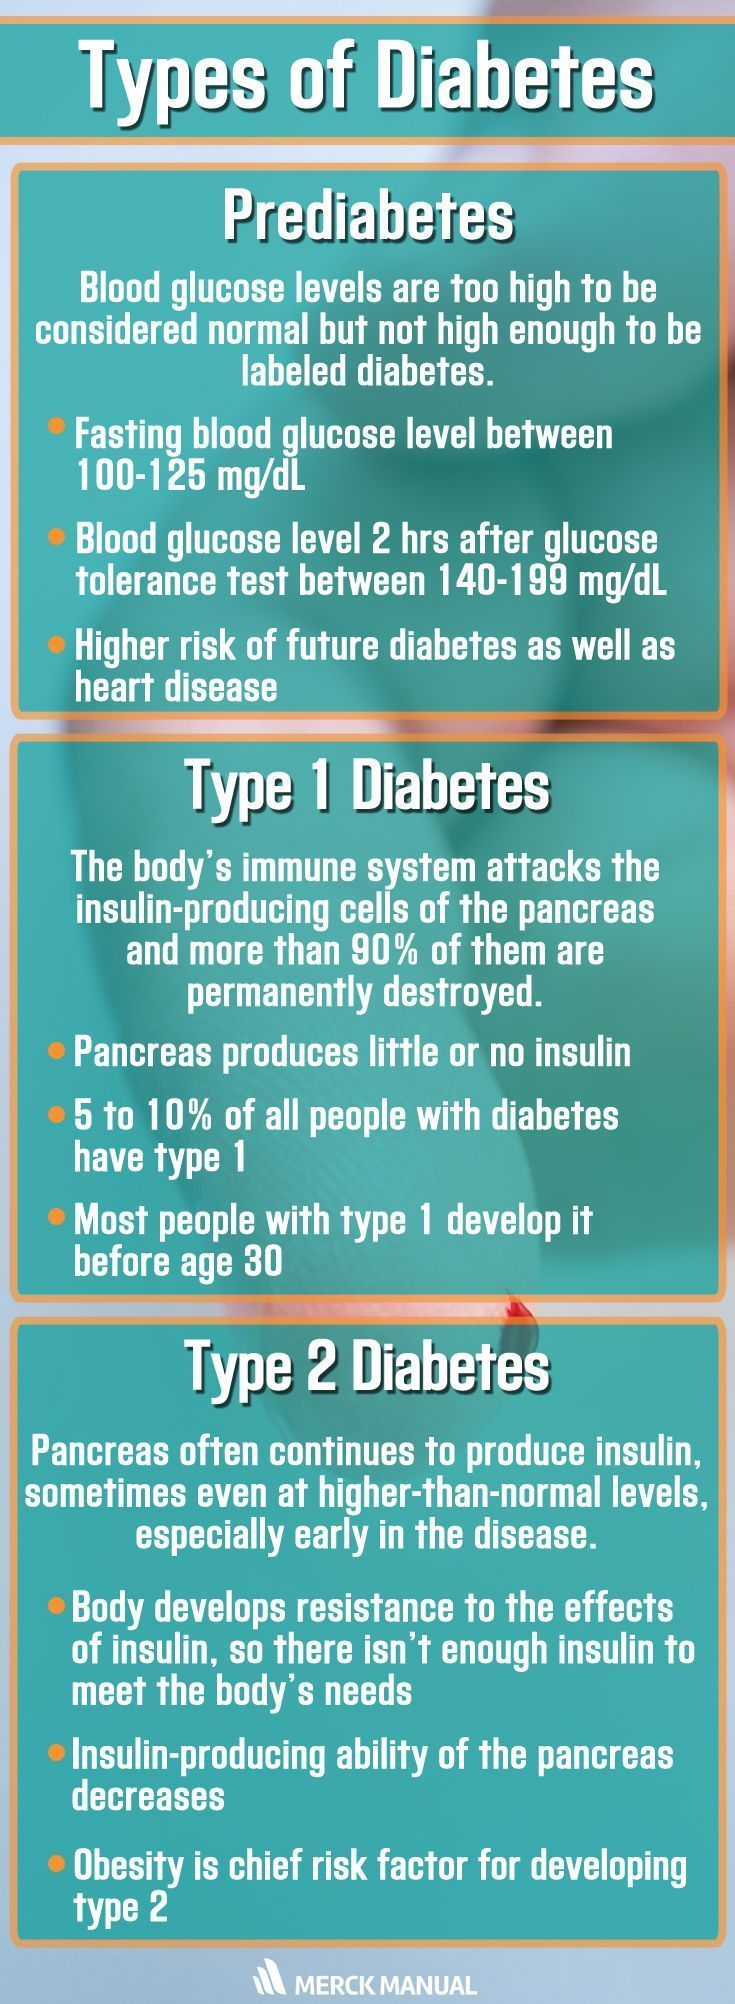 Learn More This Worlddiabetesday Typecmetabolicdiet Diabetesnomore Diabetes Education Metabolic Disorders Types Of Diabetes